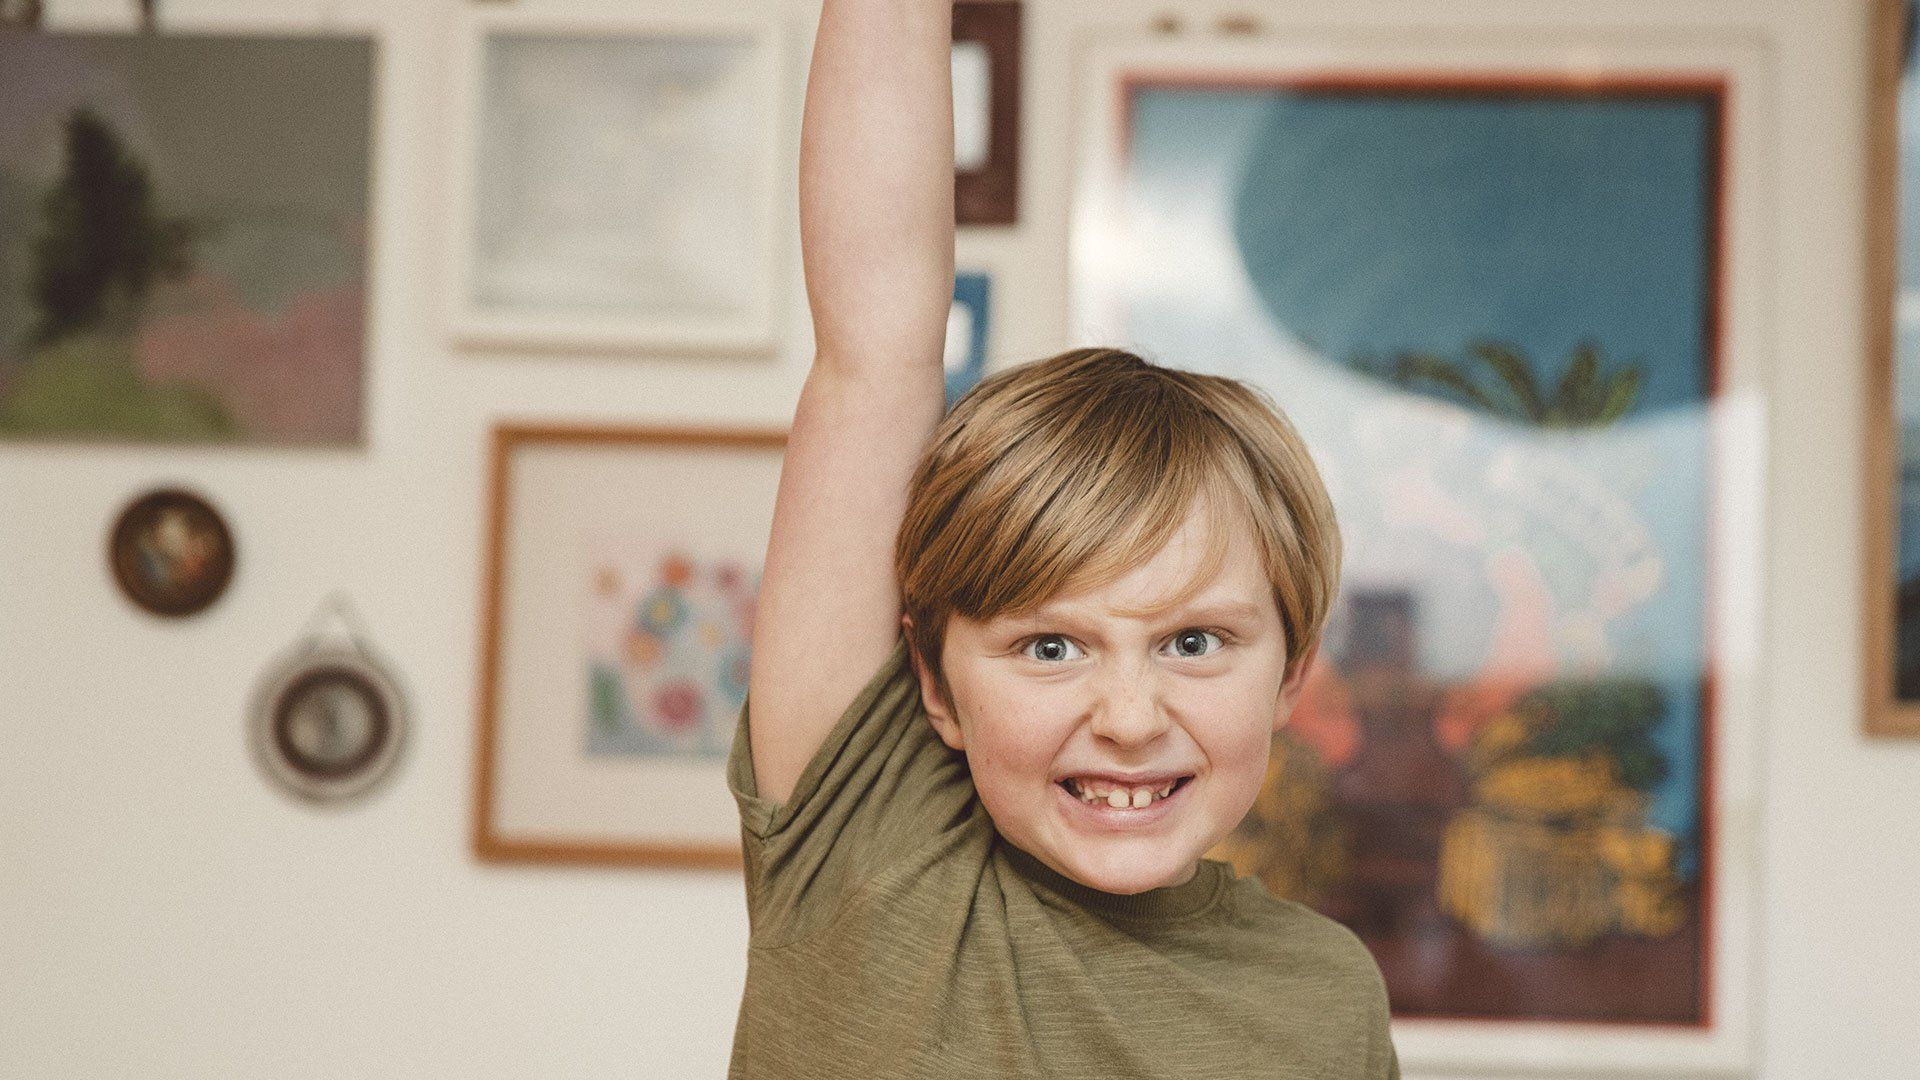 Portrait of a boy with his hand up